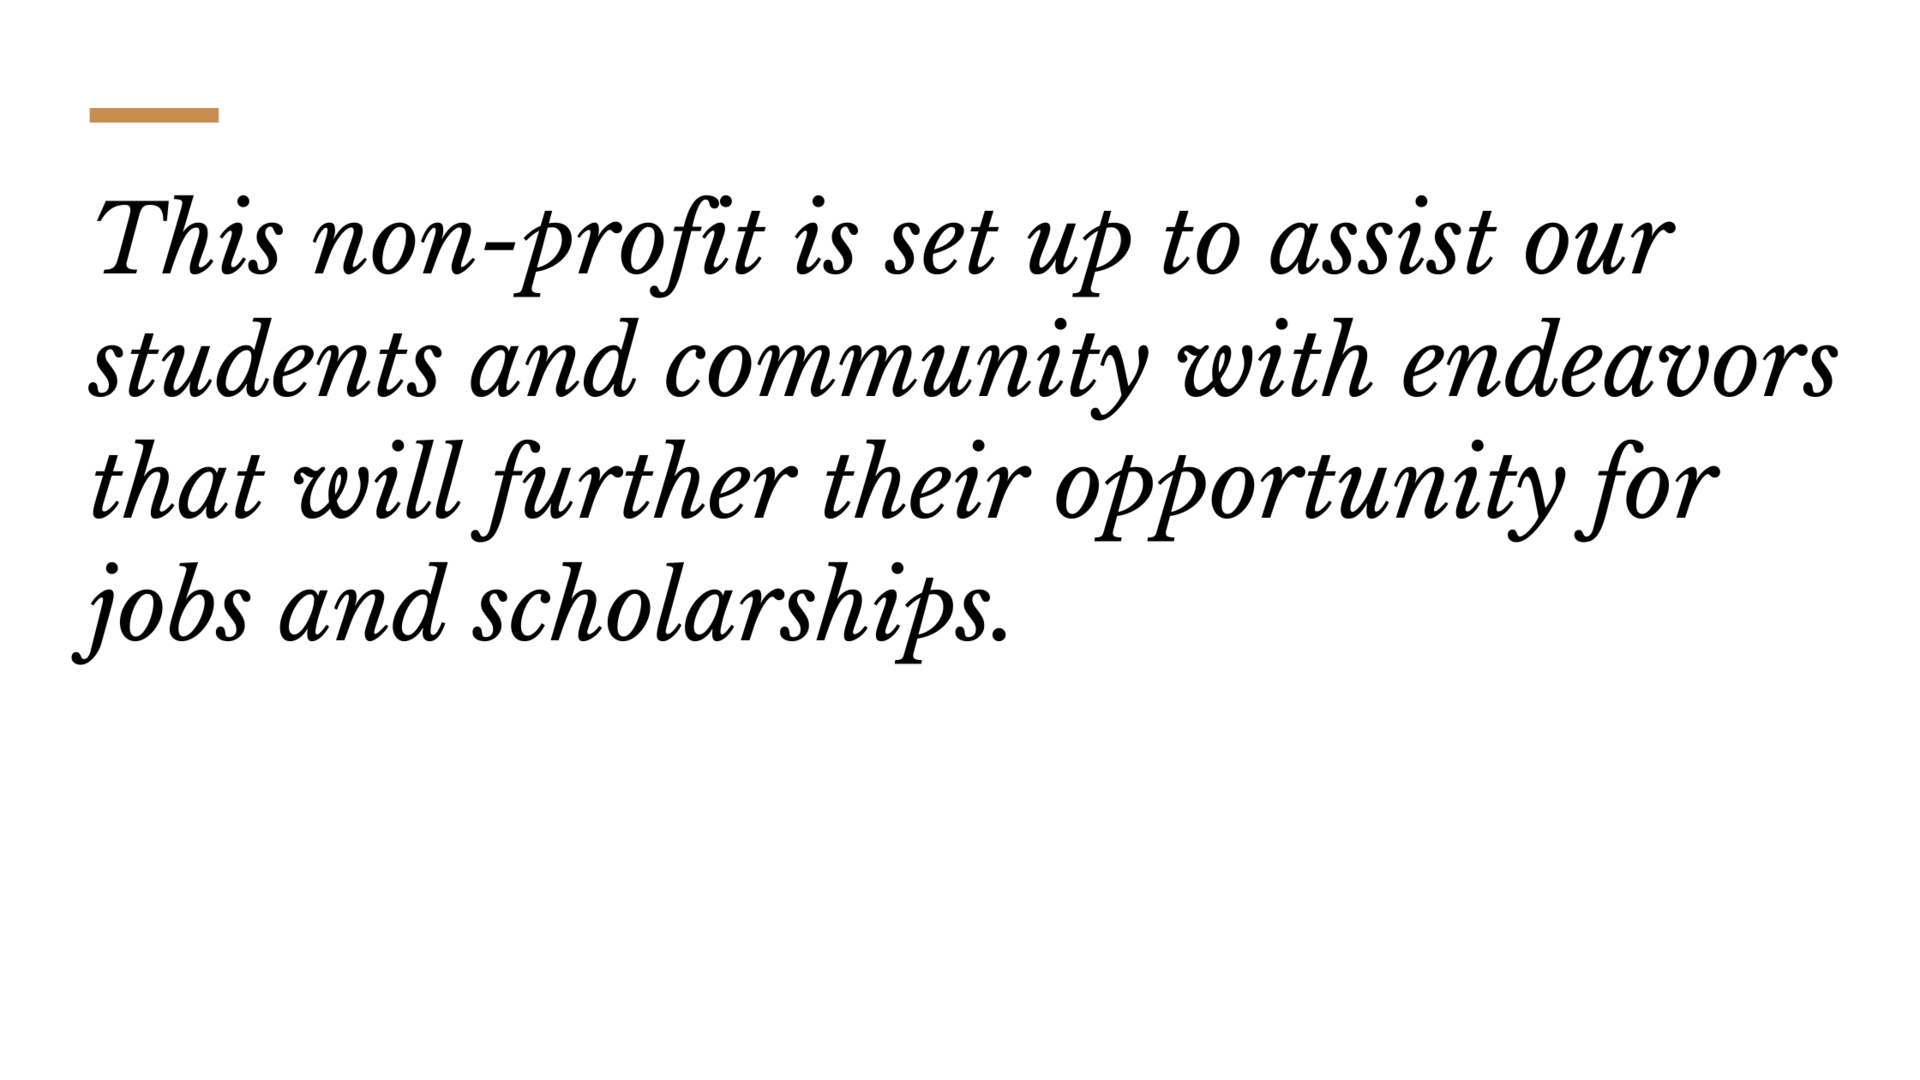 This non-profit is set up to assist our students and community with endeavors that will further their opportunity for jobs and scholarships.